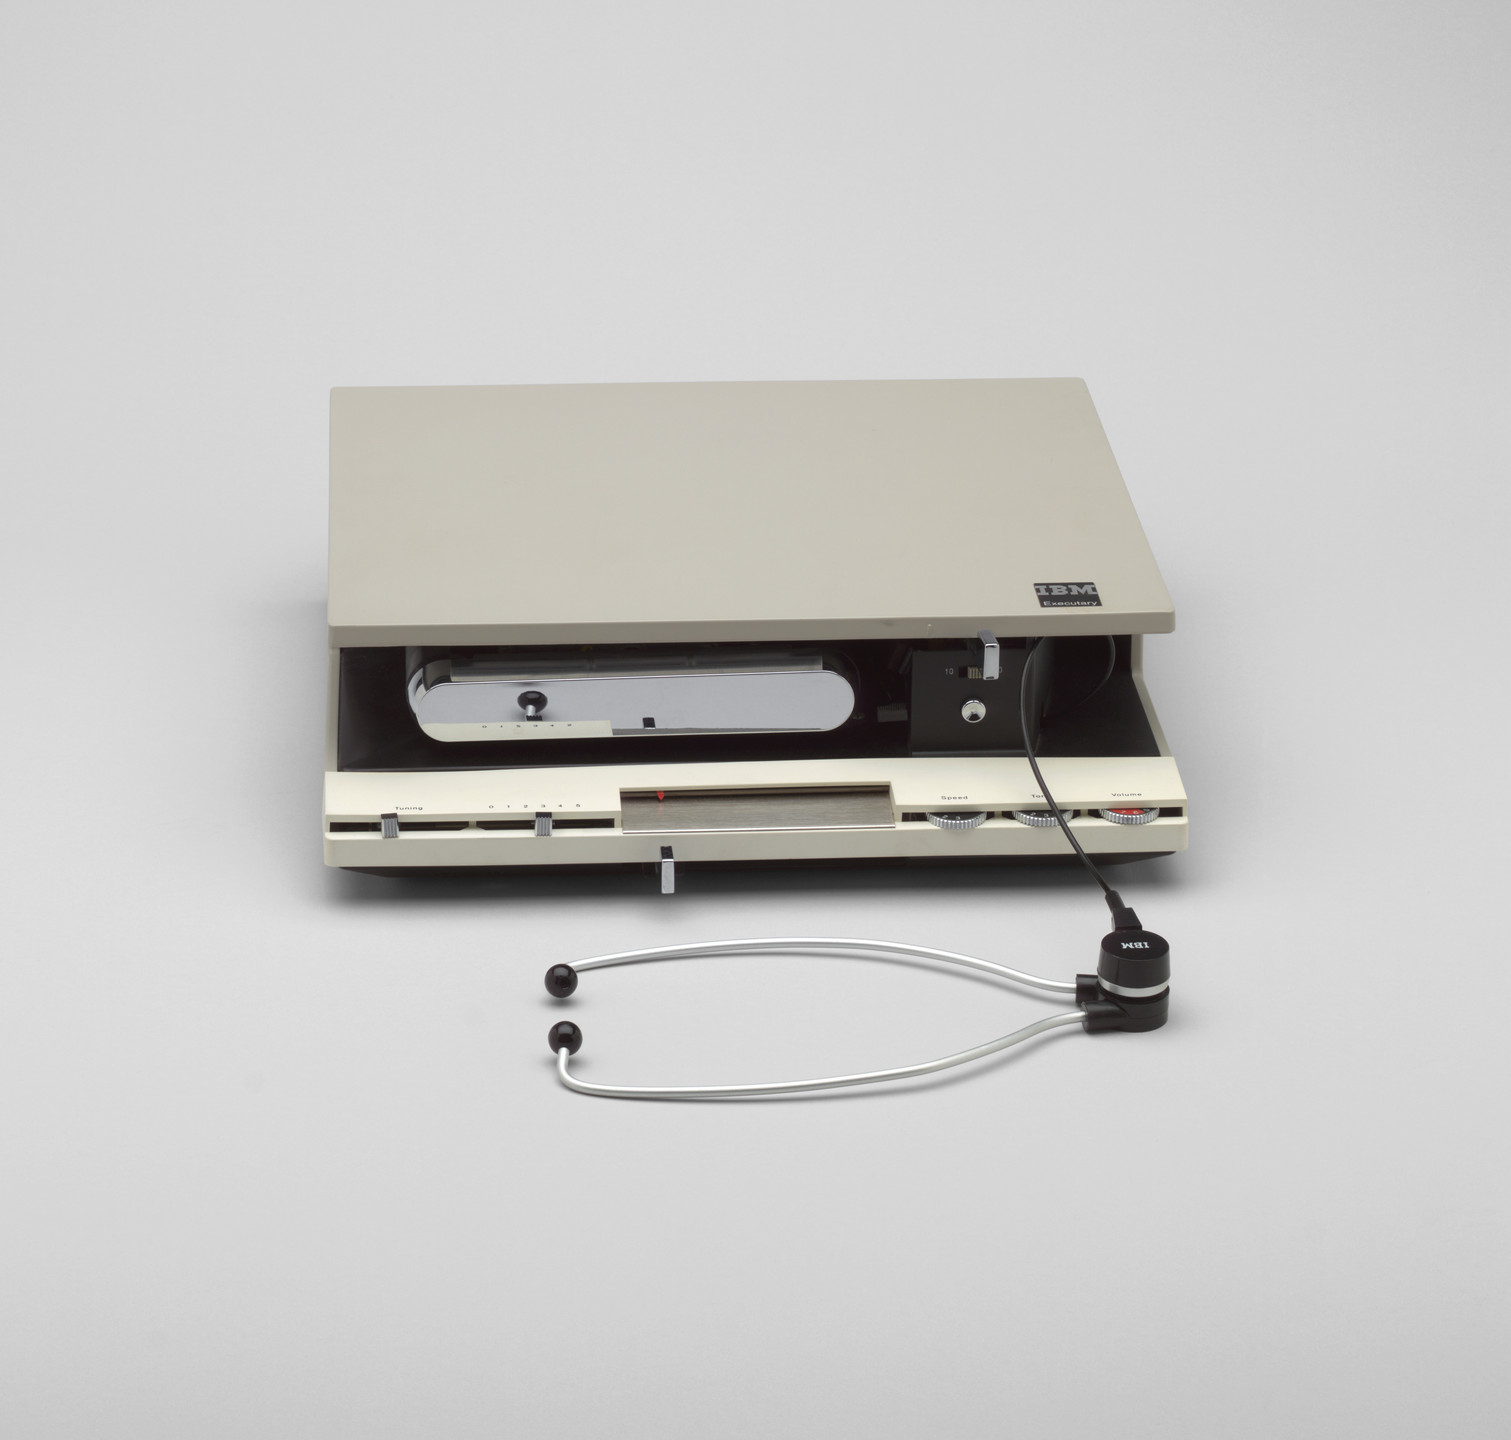 Eliot Noyes and Associates. Executary Transcribing Machine (model 272). 1966